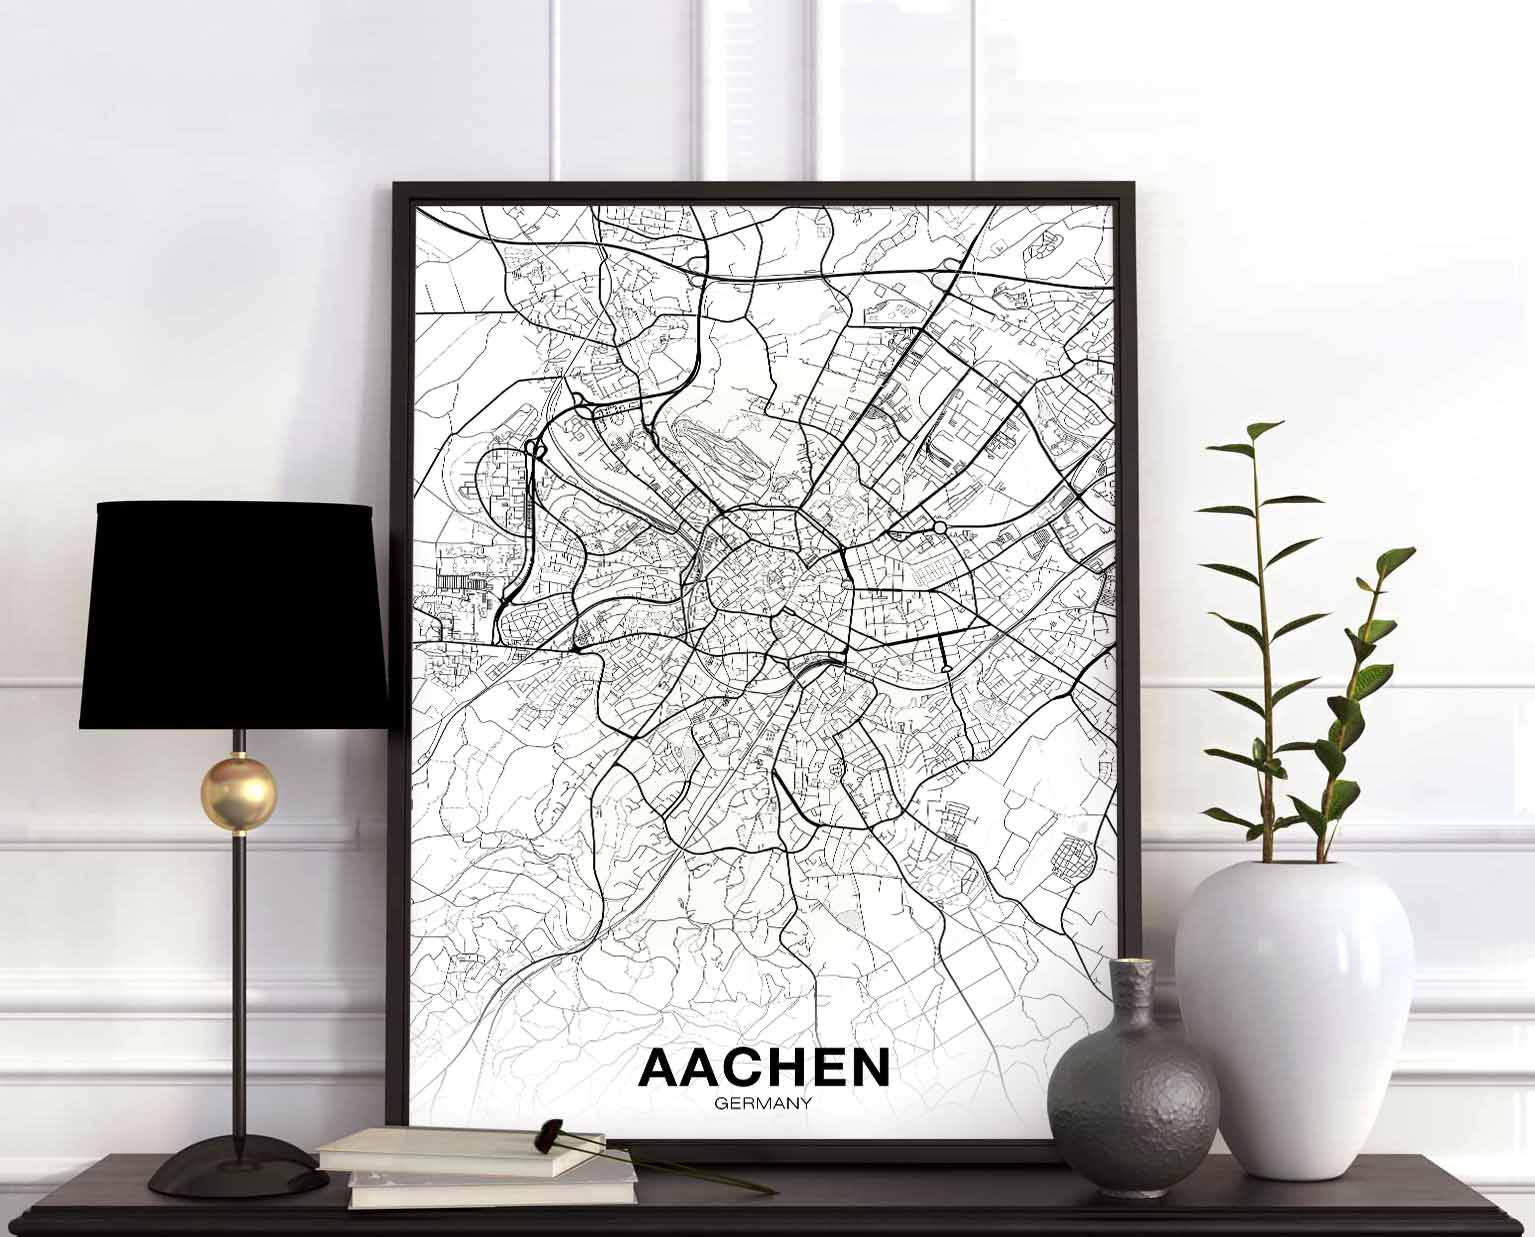 Aachen Germany Map Poster Hometown City Print Modern Home Decor Office Decoration Wall Art Dorm Bedroom Gift